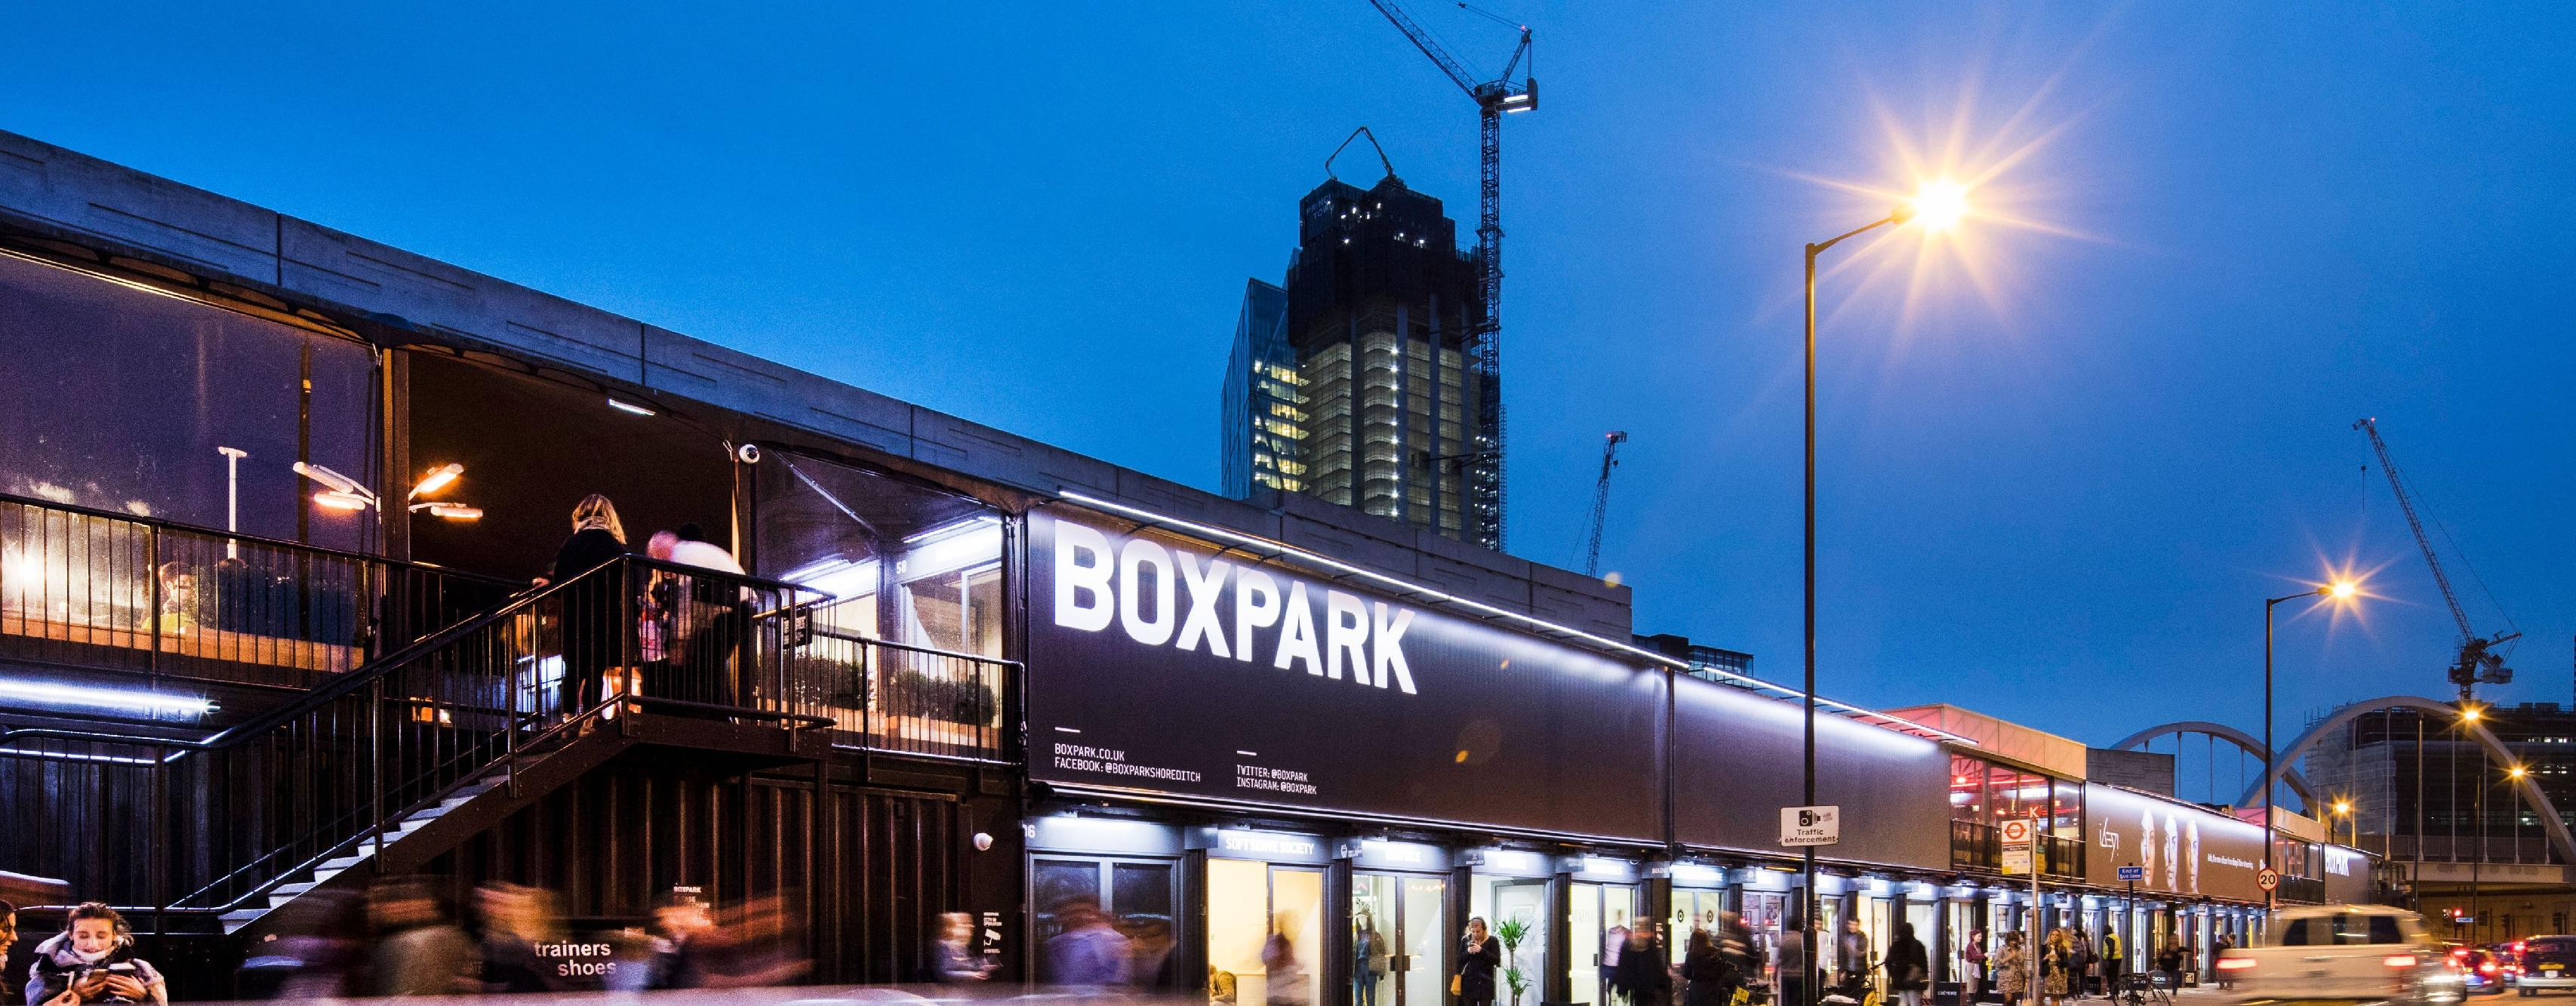 BOXPARK - Shoreditch Brand Cover